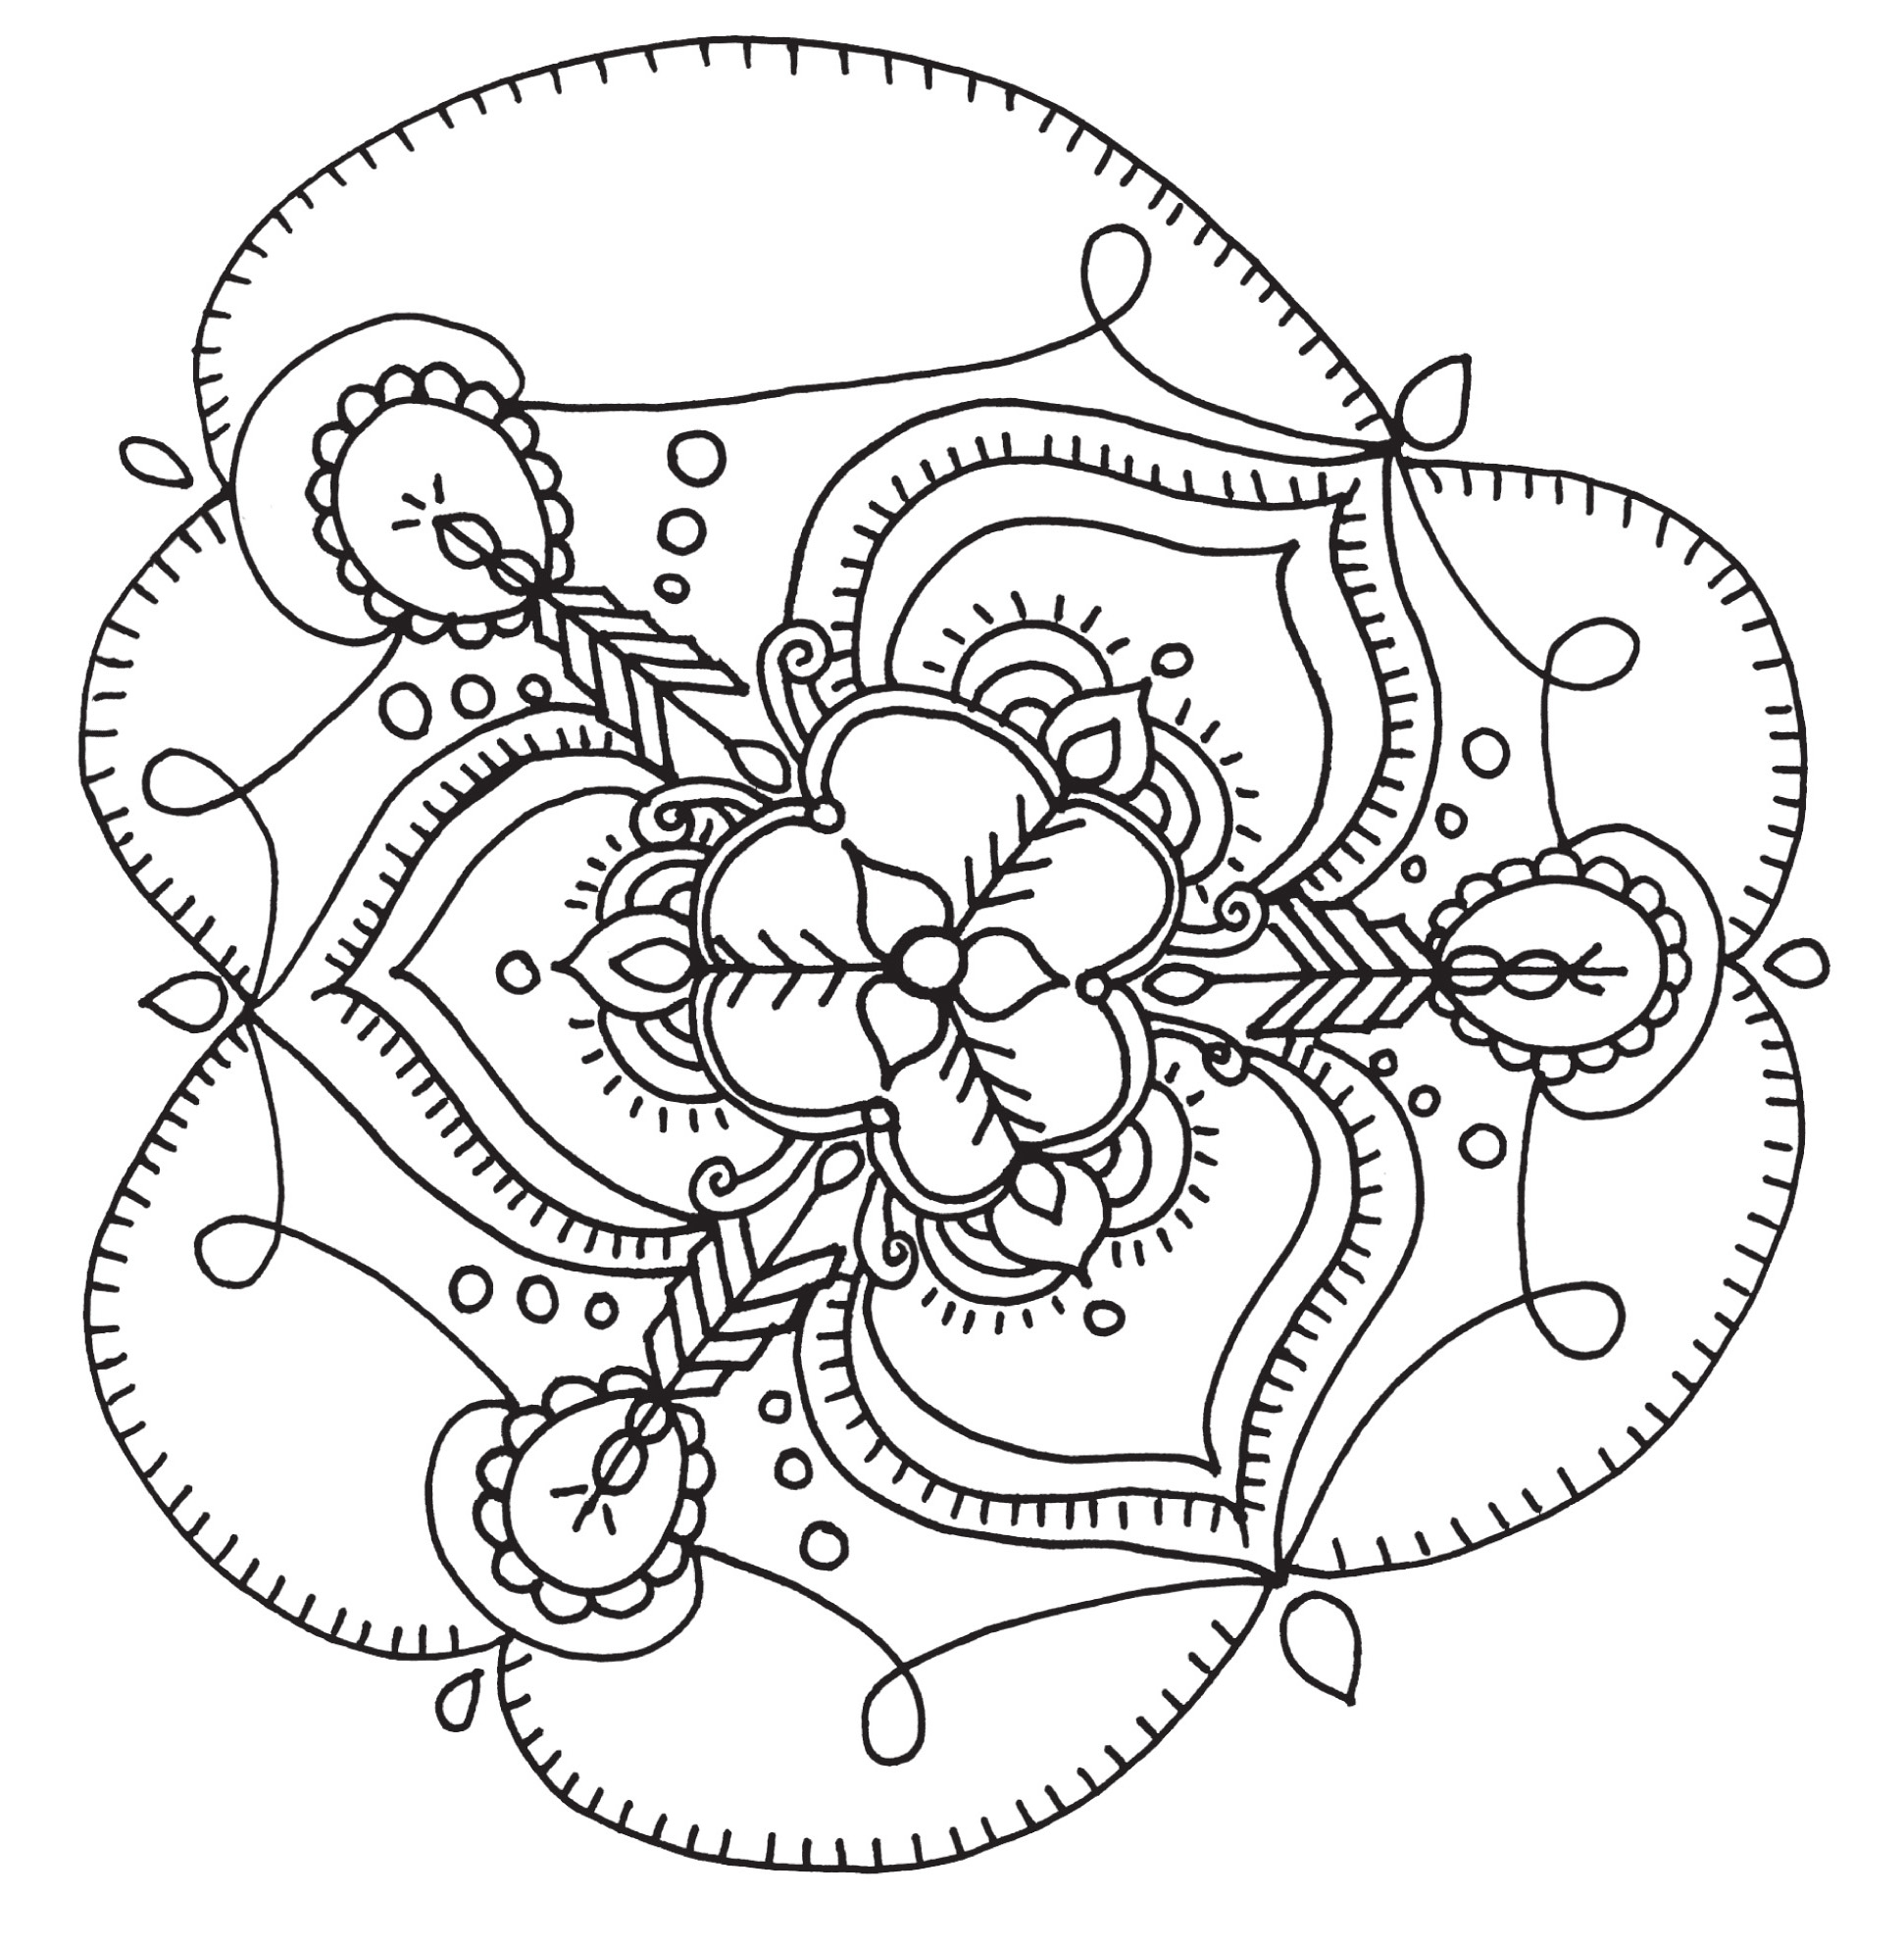 free downloadable coloring pages - free coloring media 9183